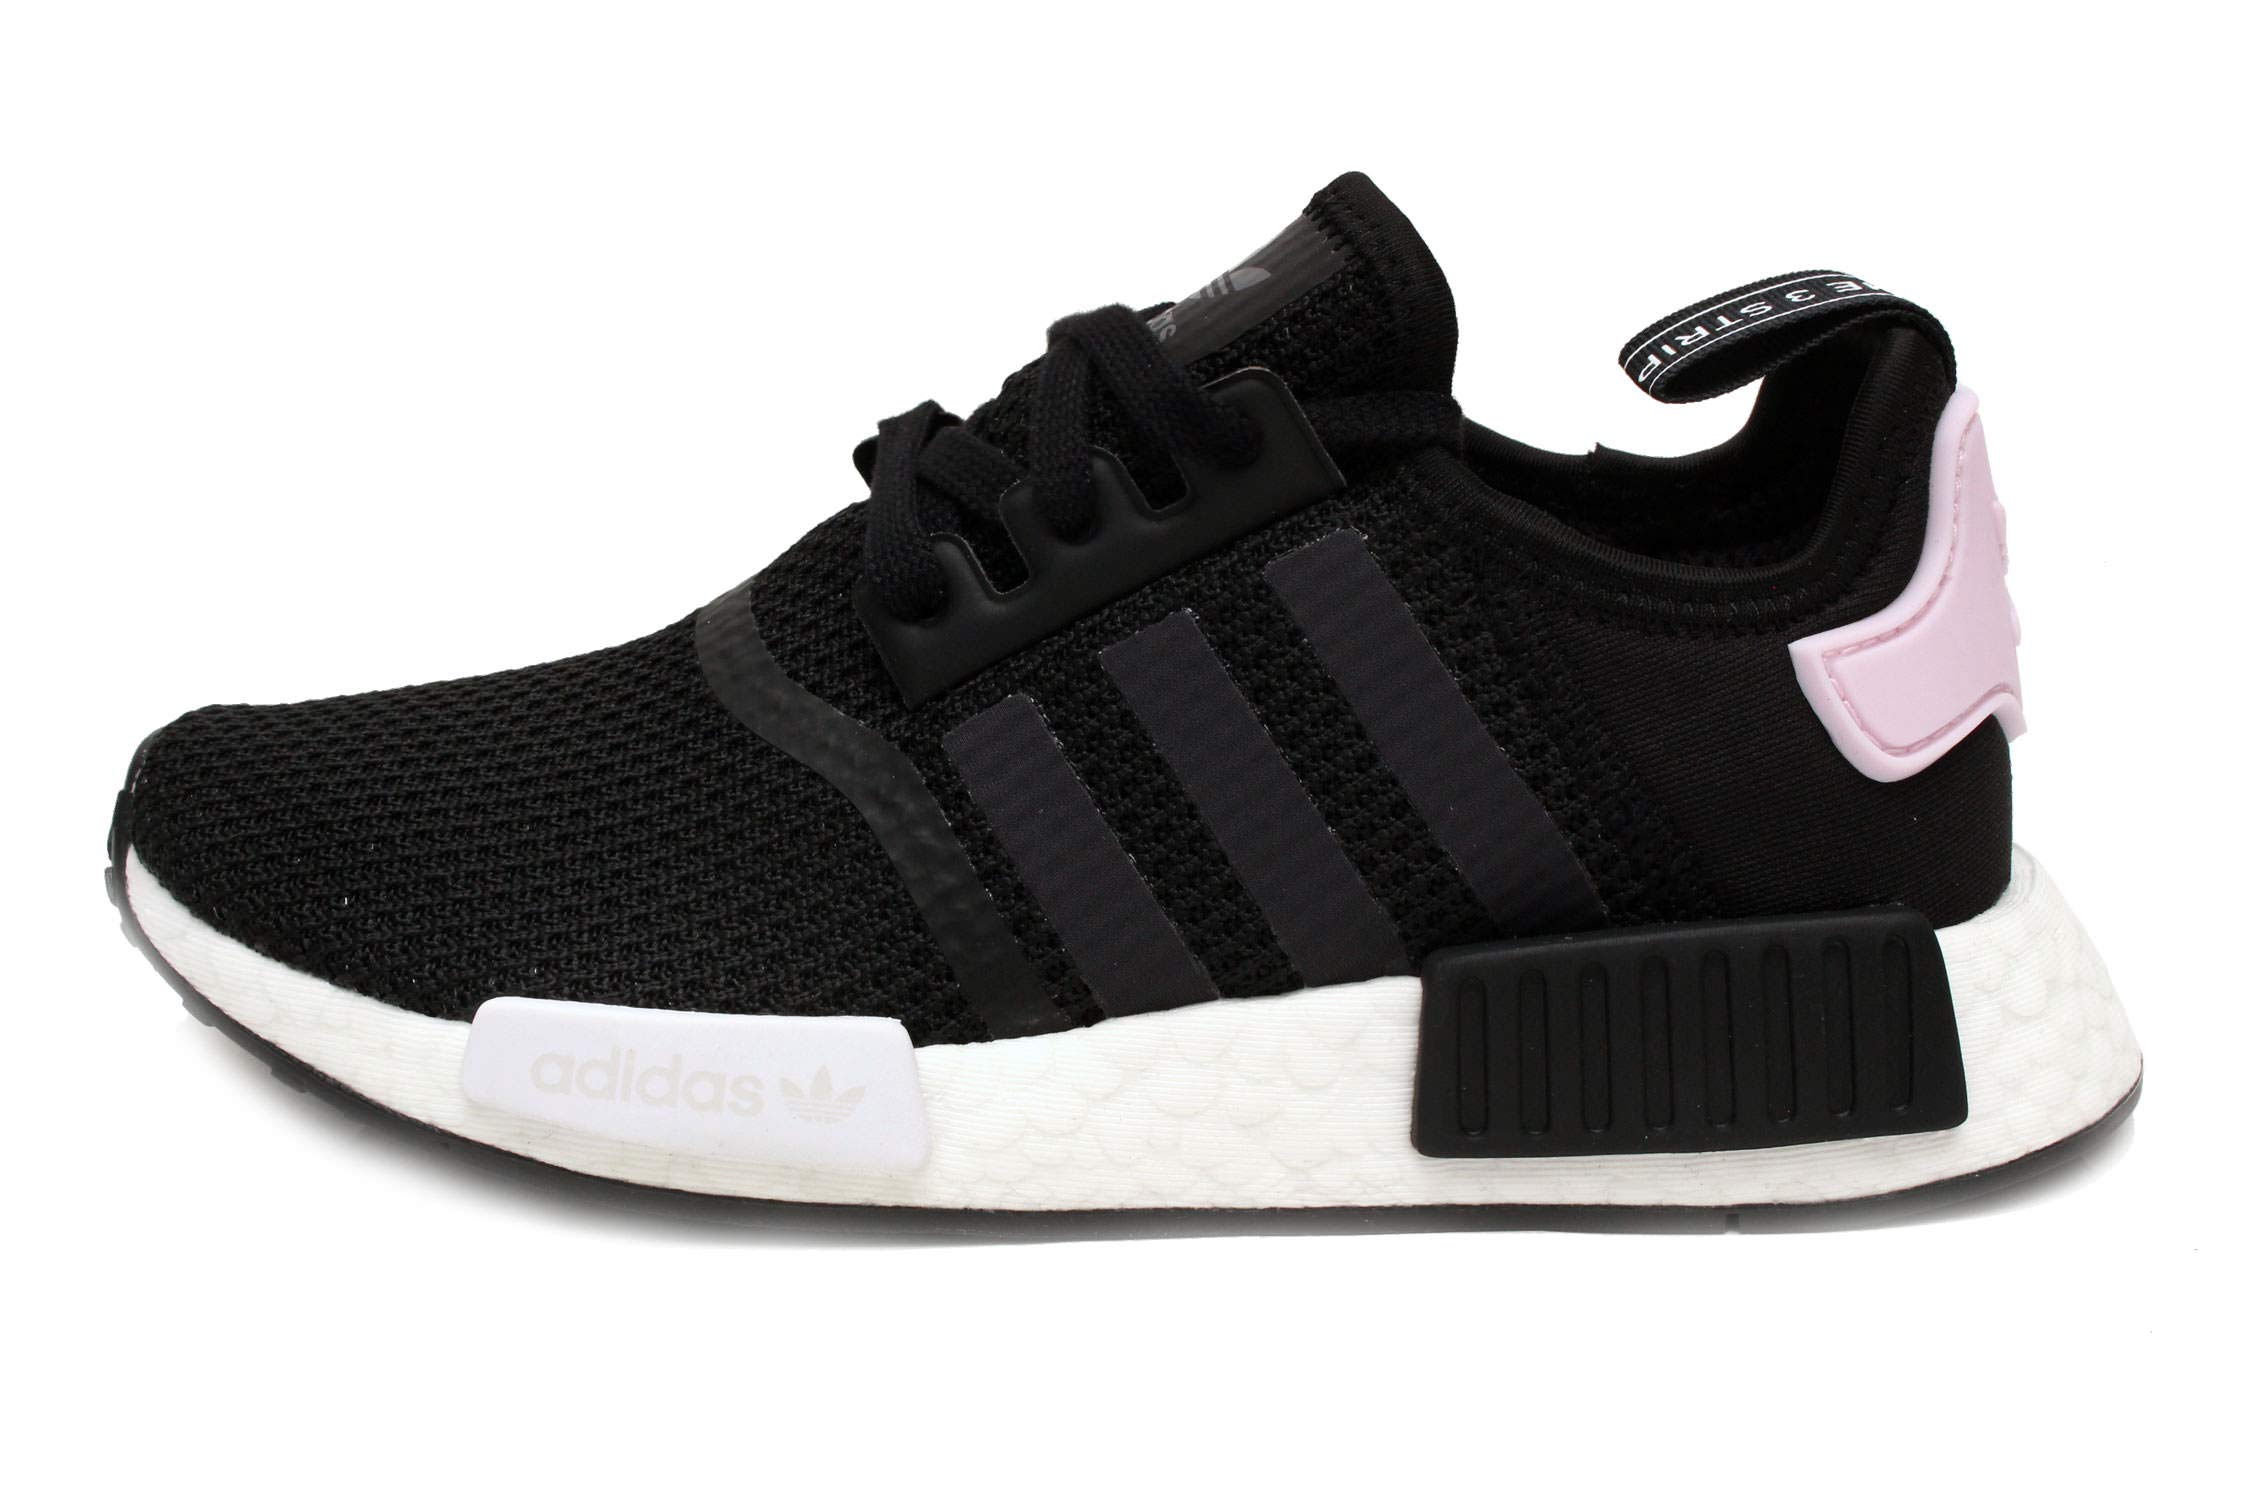 2787d4202045b Galleon - Adidas Originals NMD R1 Shoe Women s Casual 9.5 Black-White-Clear  Pink